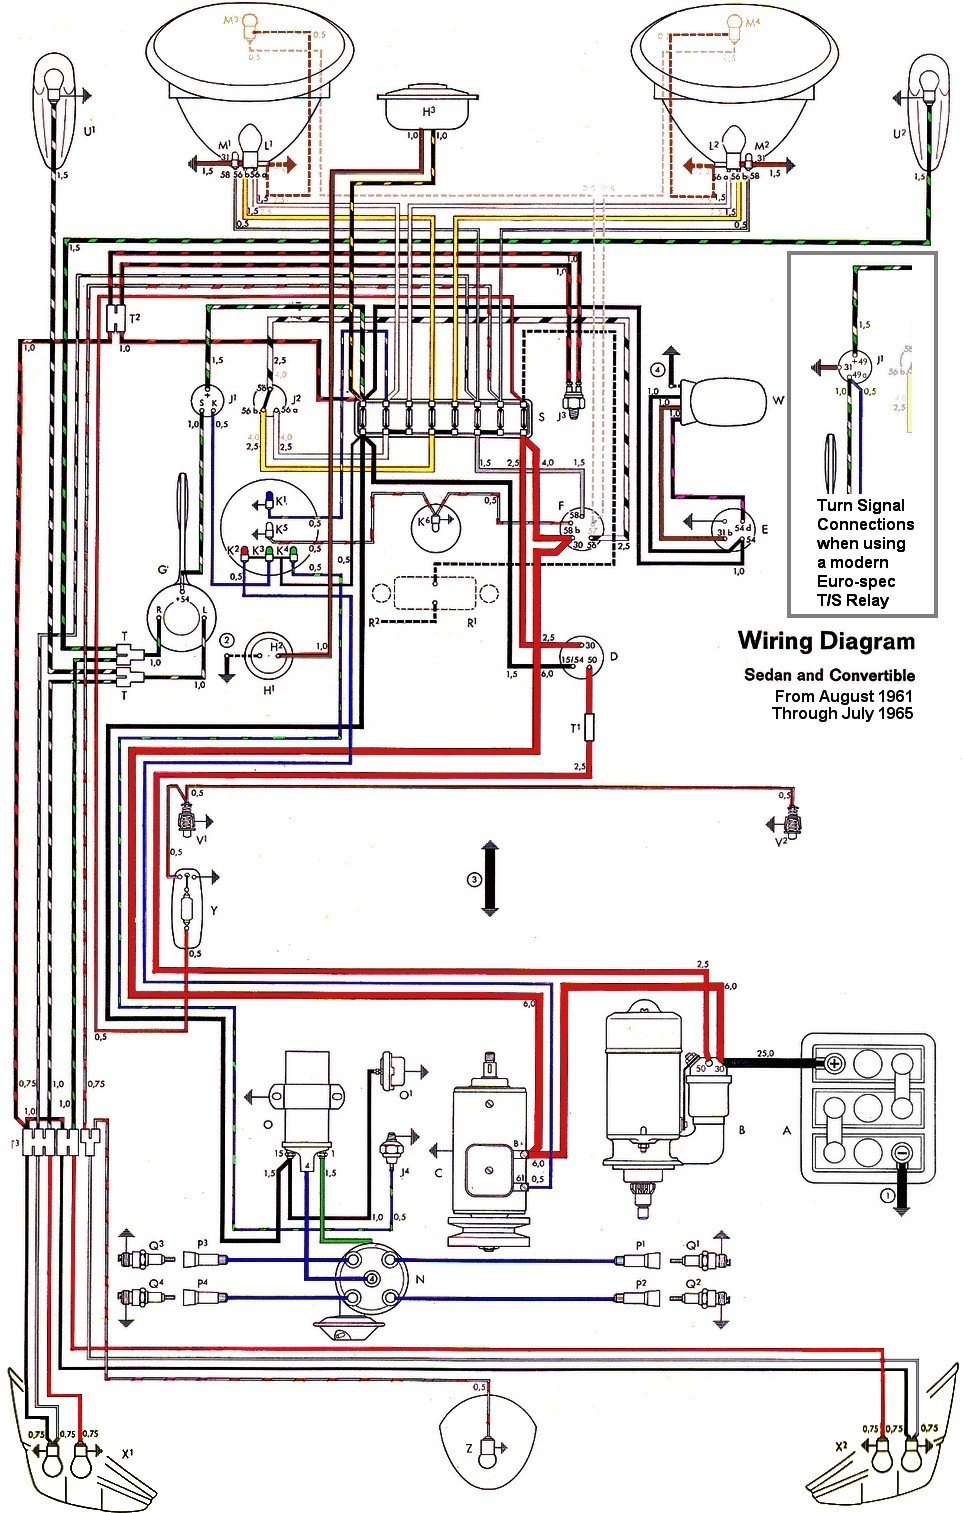 vw wiring diagrams schematics wiring diagrams u2022 rh seniorlivinguniversity co